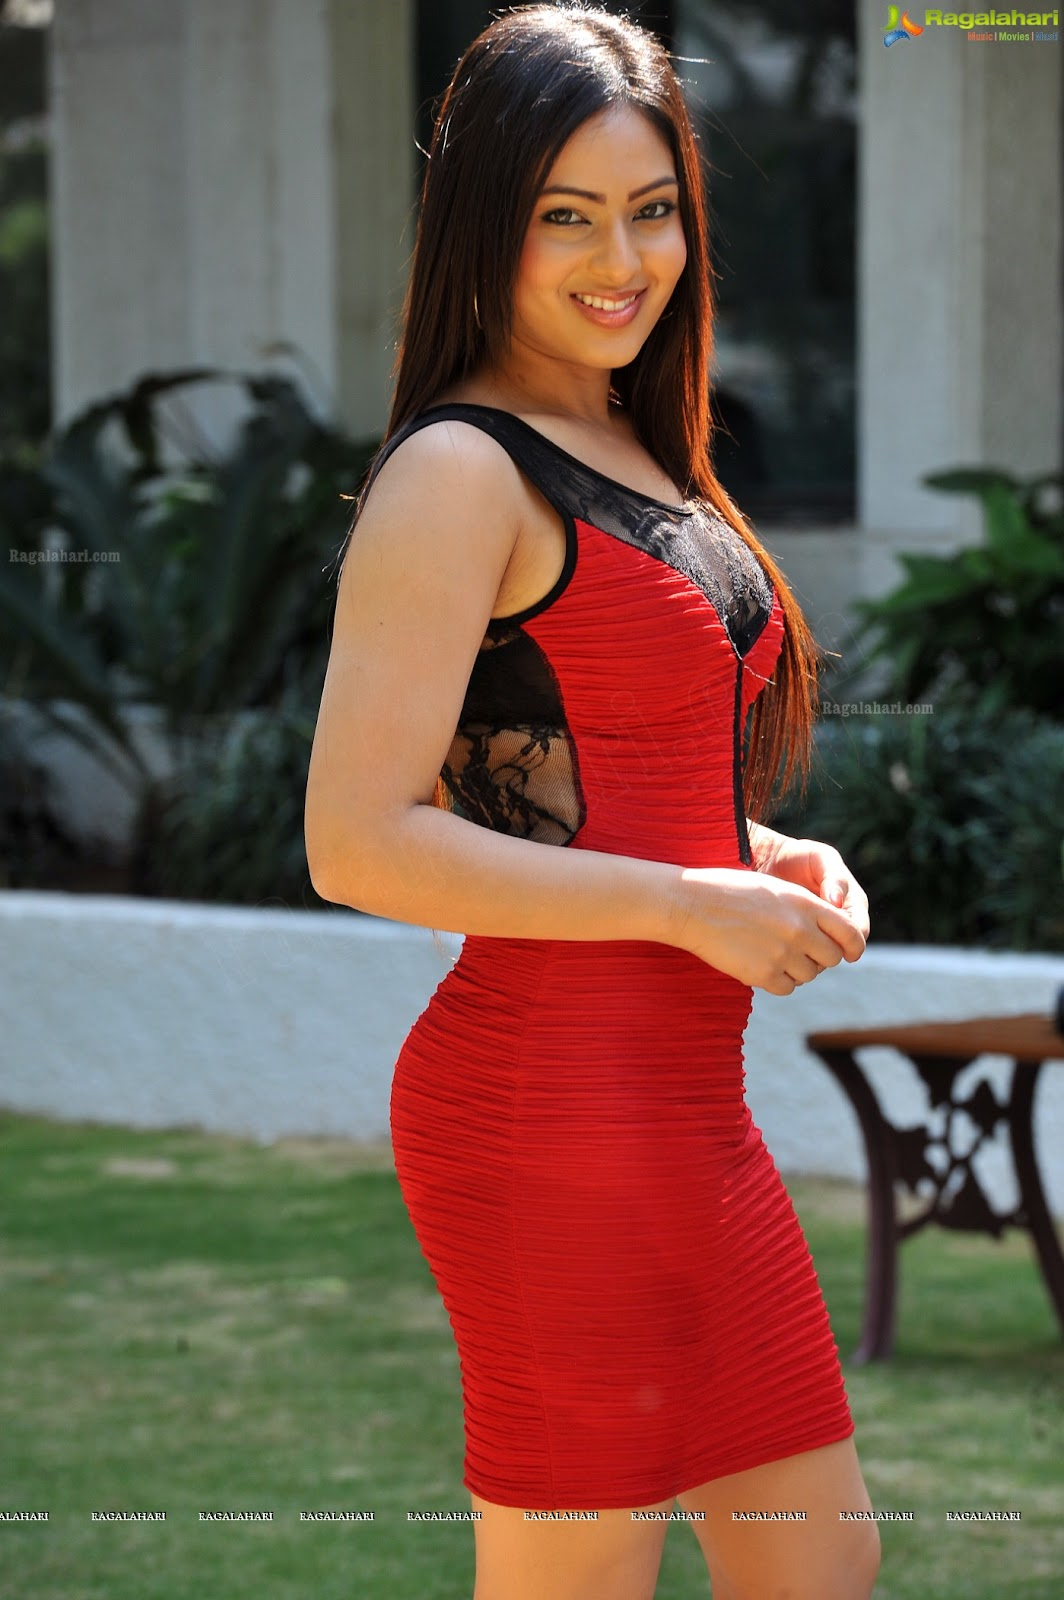 Nikesha Patel in Red Dress1 -  Nikesha Patel Hot Pics In Red Dress